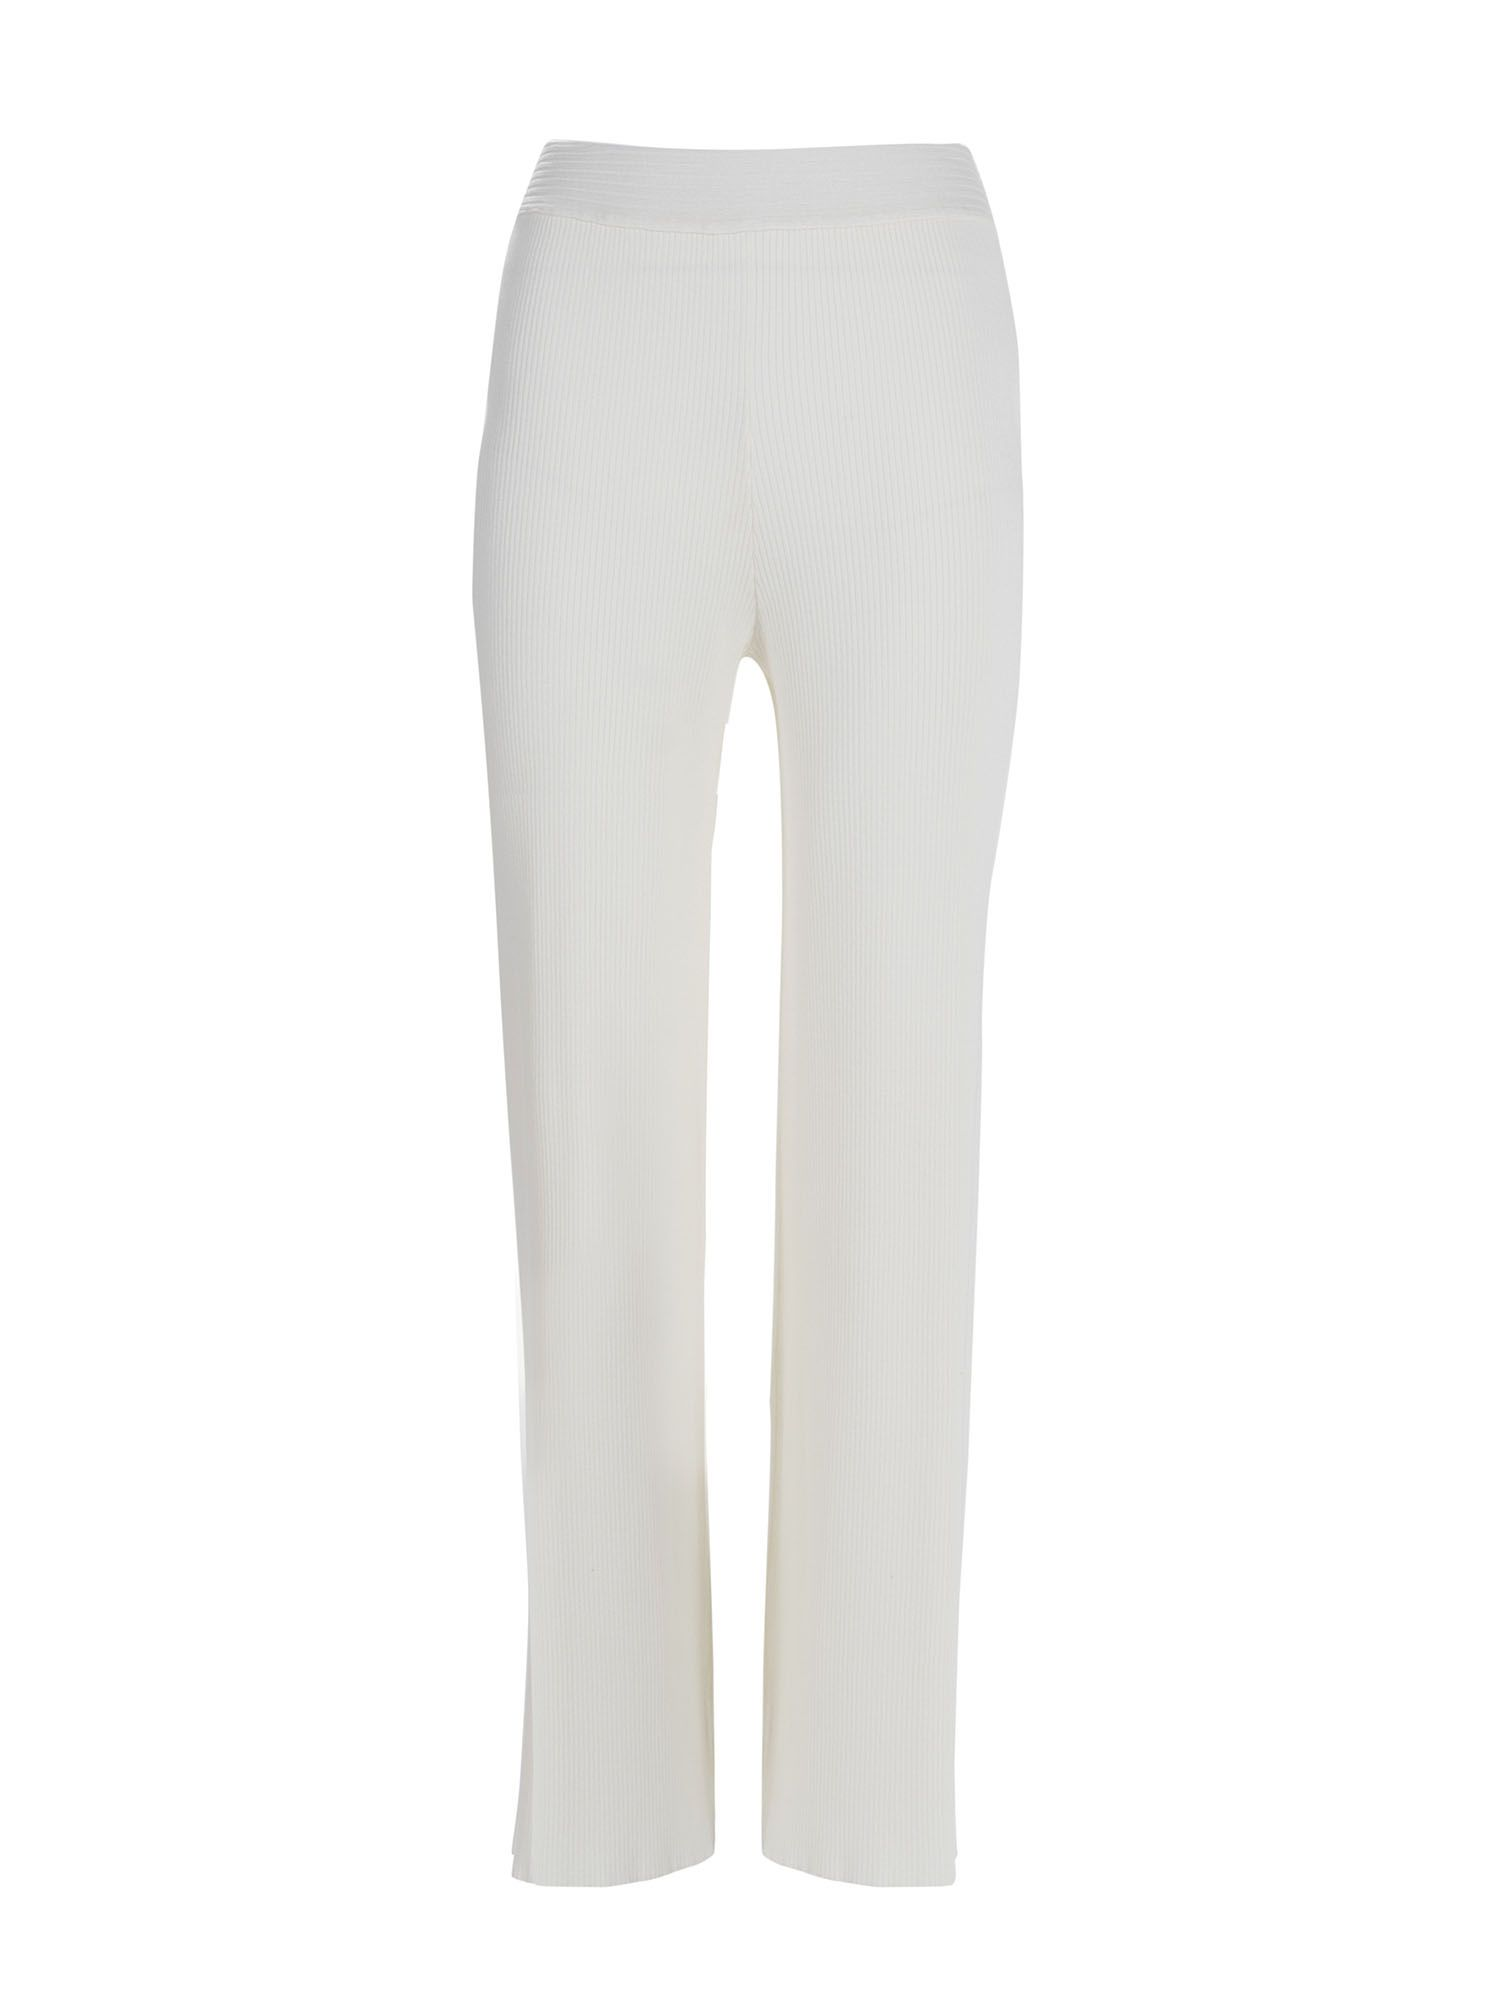 Stefanel Ribbed Trousers, Cream